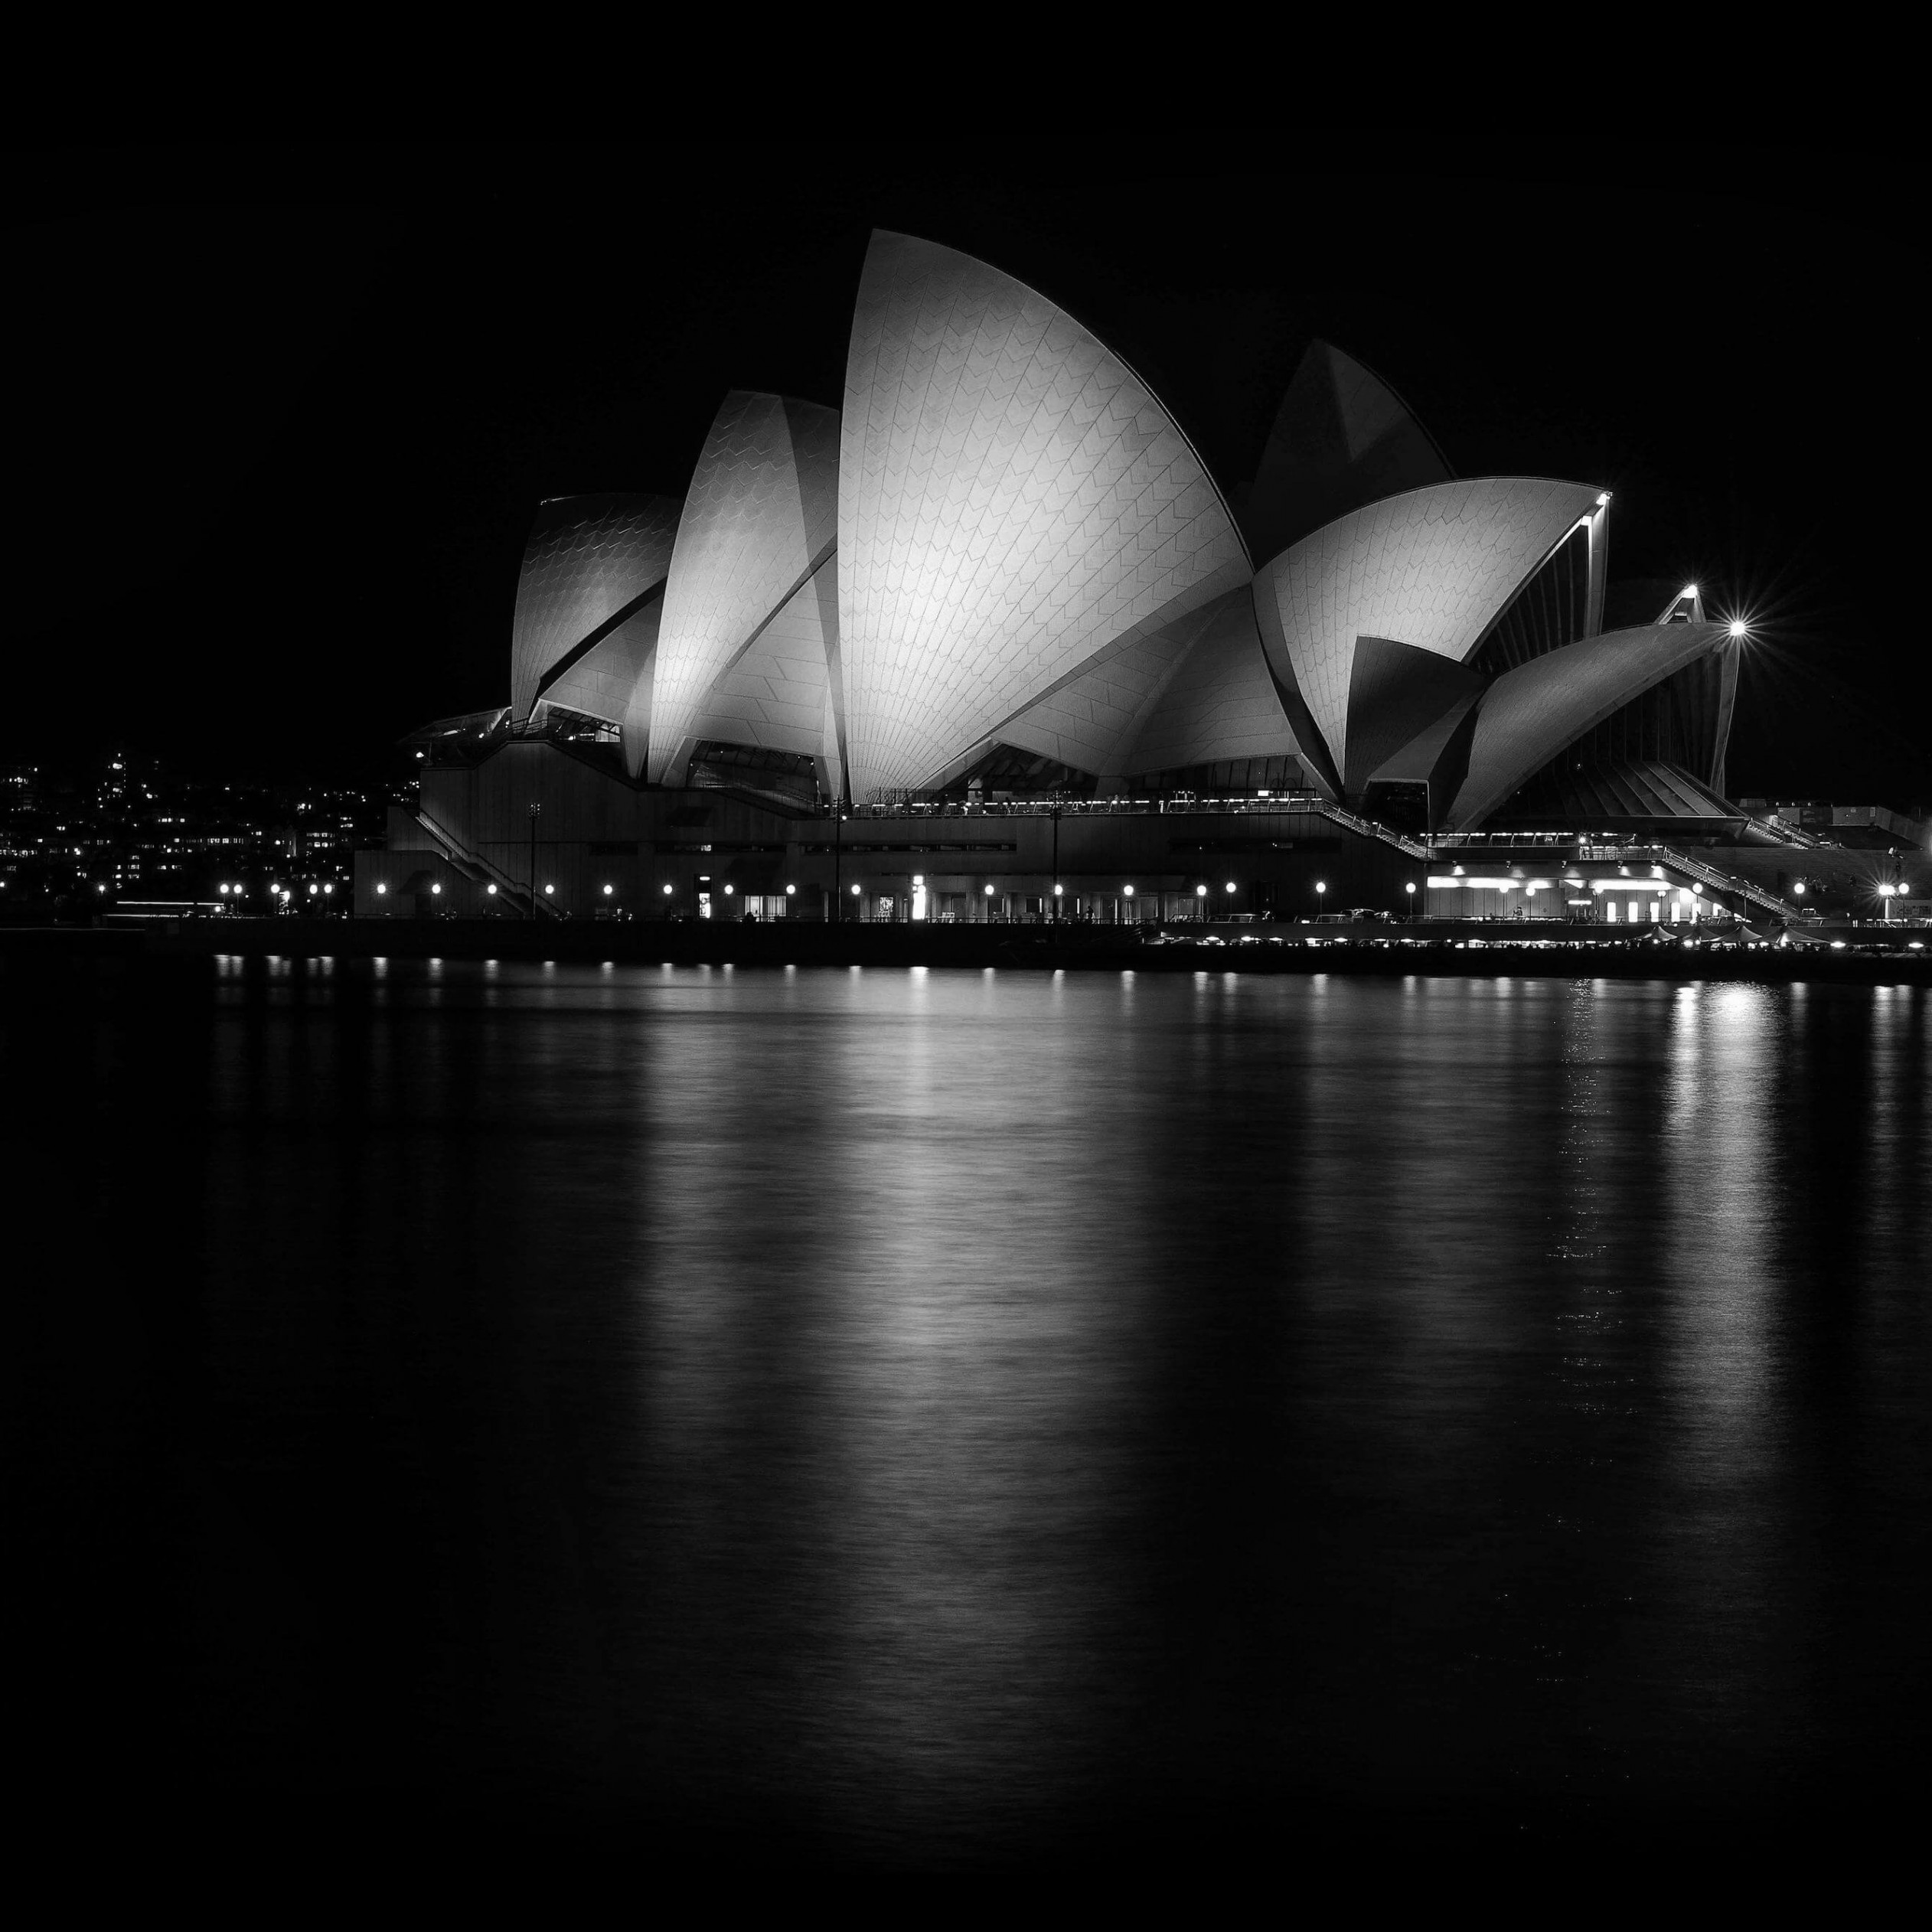 Sydney Opera House at Night in Black & White Wallpaper for Apple iPad 4